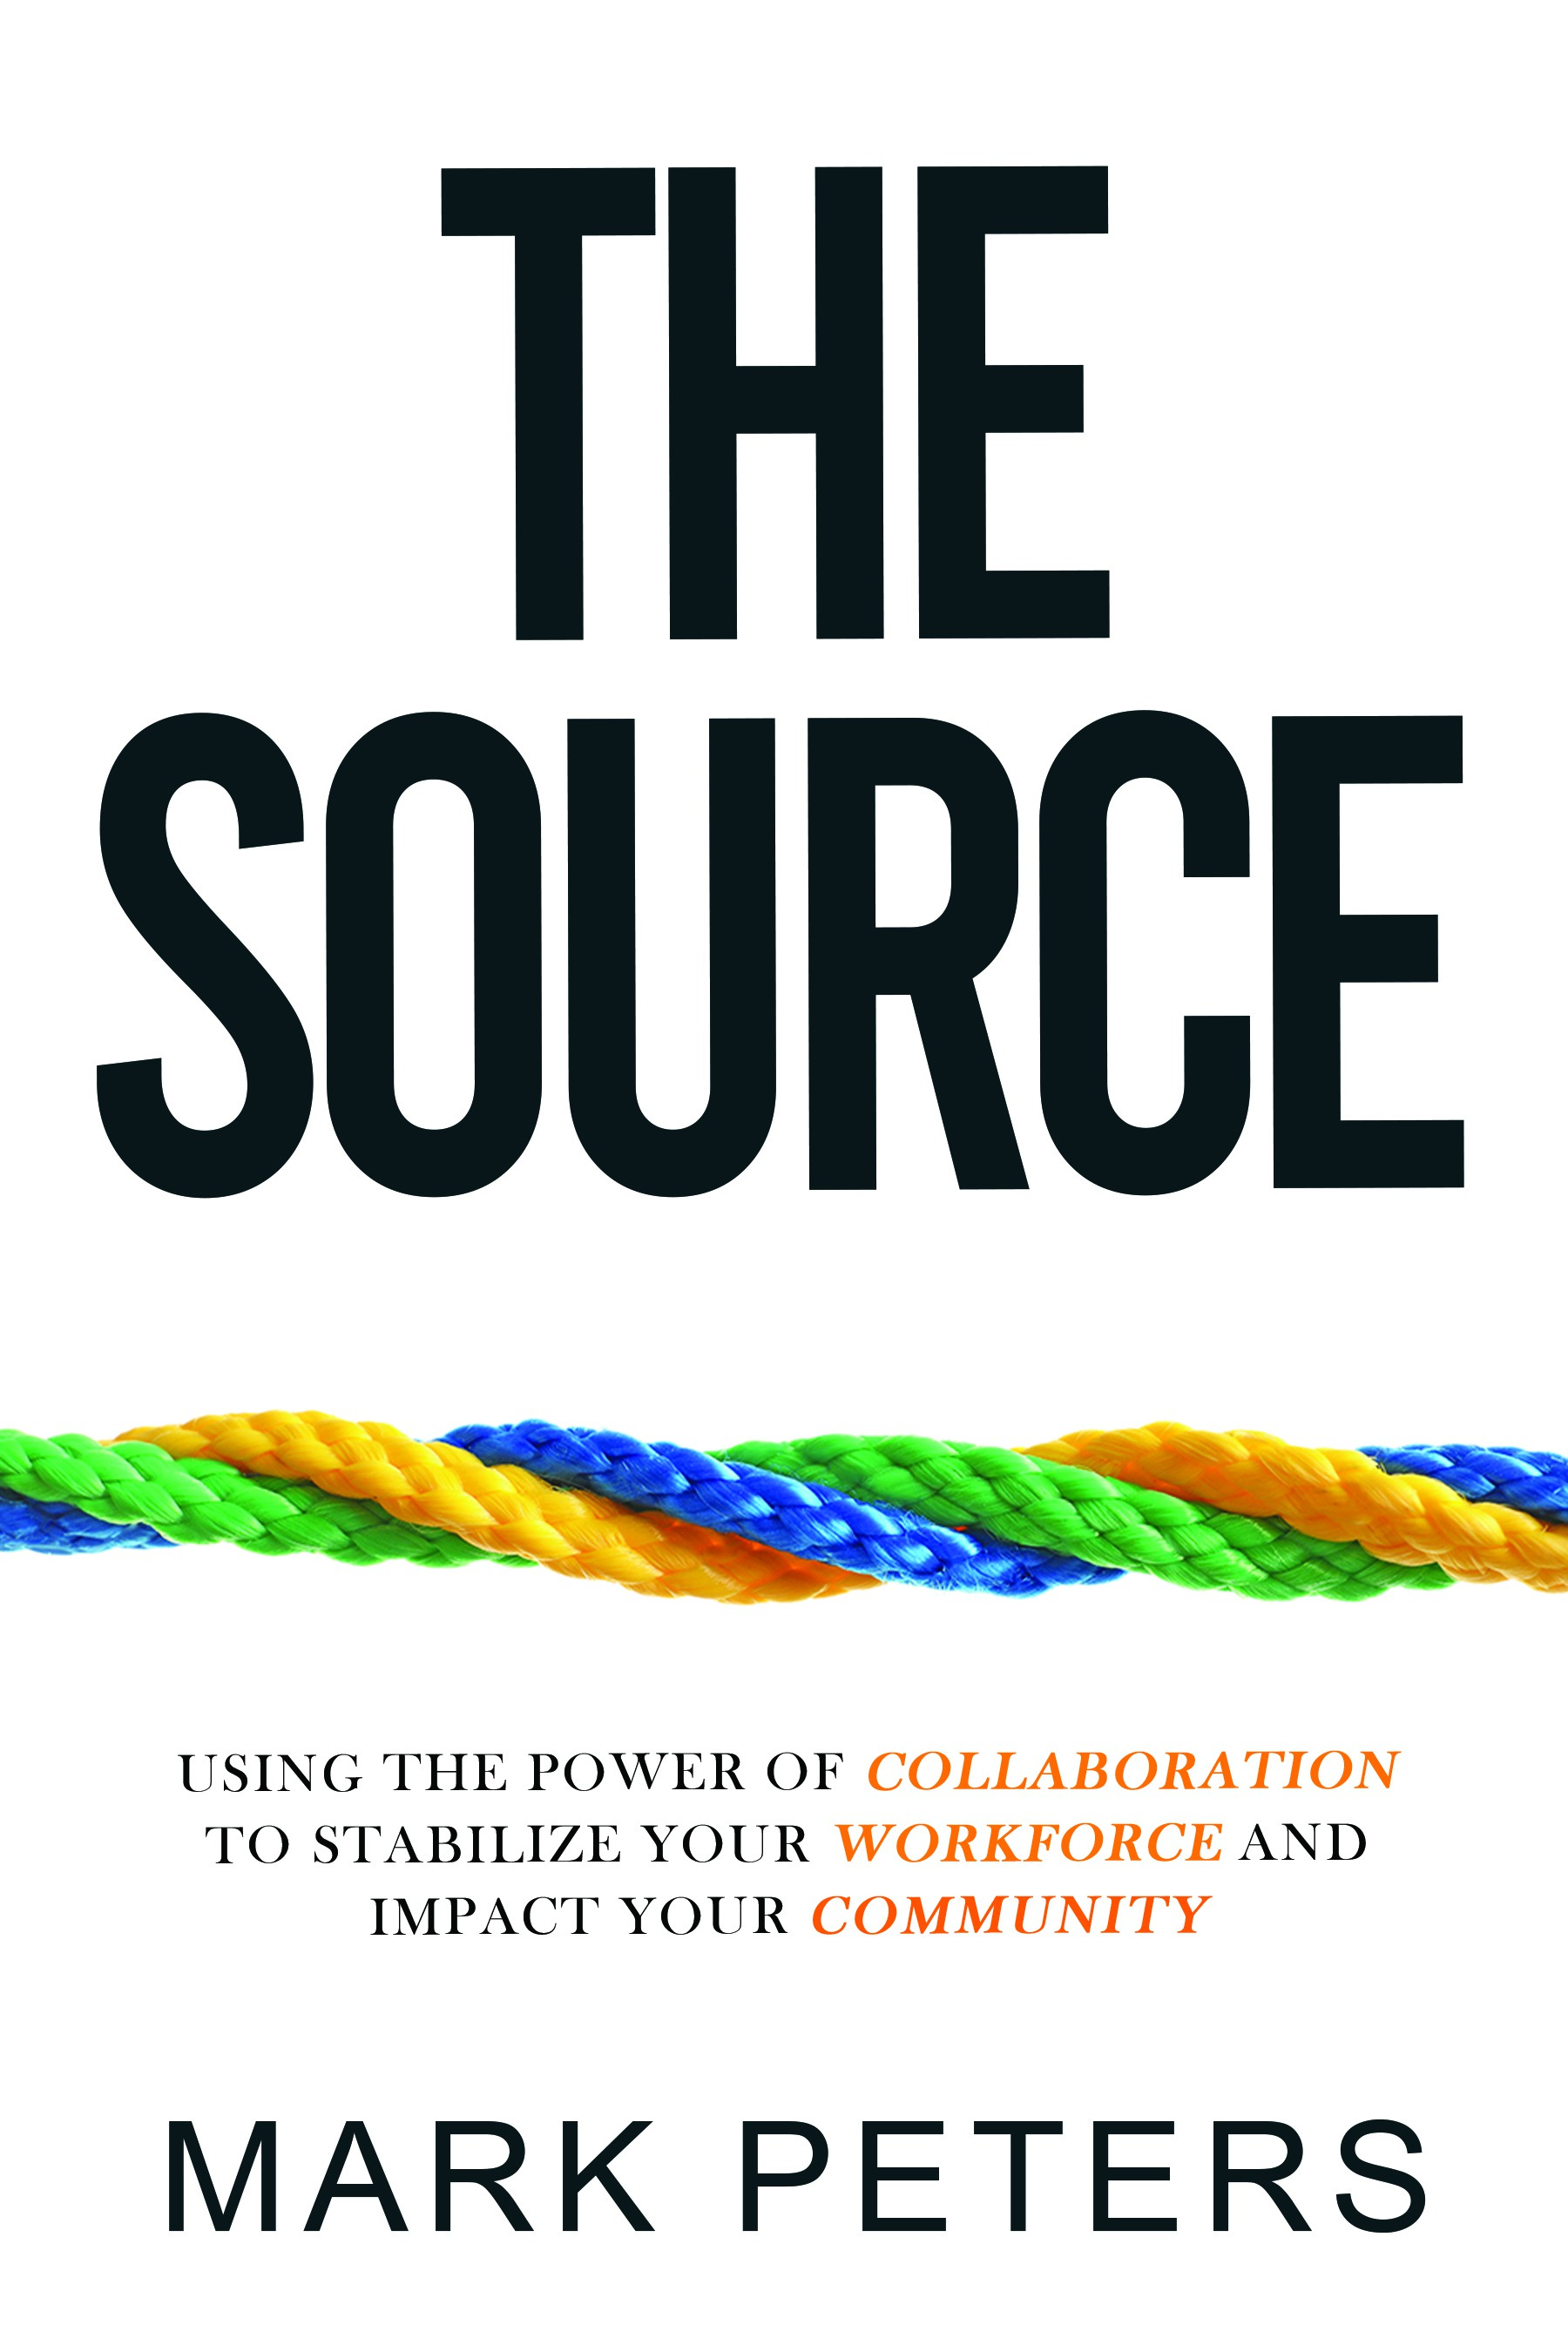 Design a cover for a book about how companies can help employees through collaboration